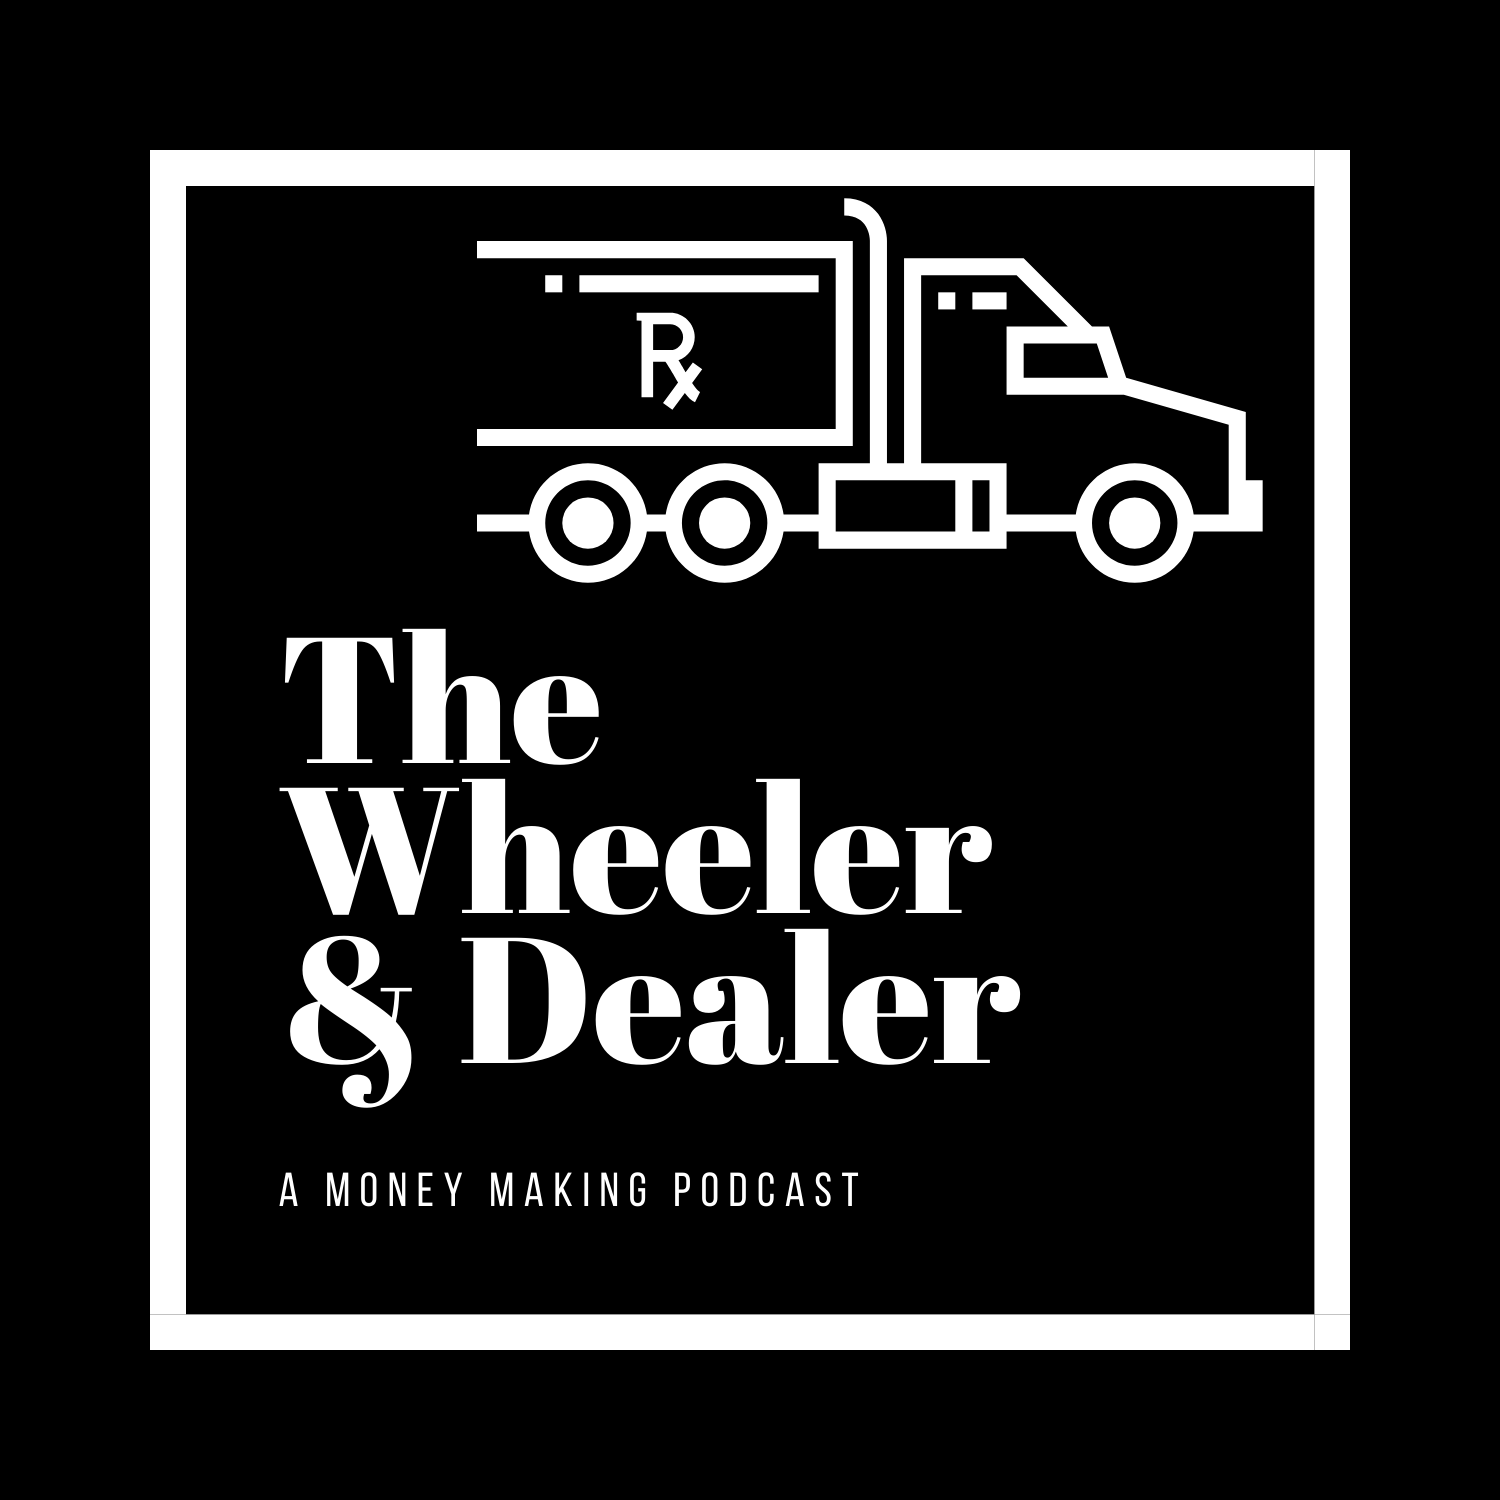 The Wheeler & Dealer